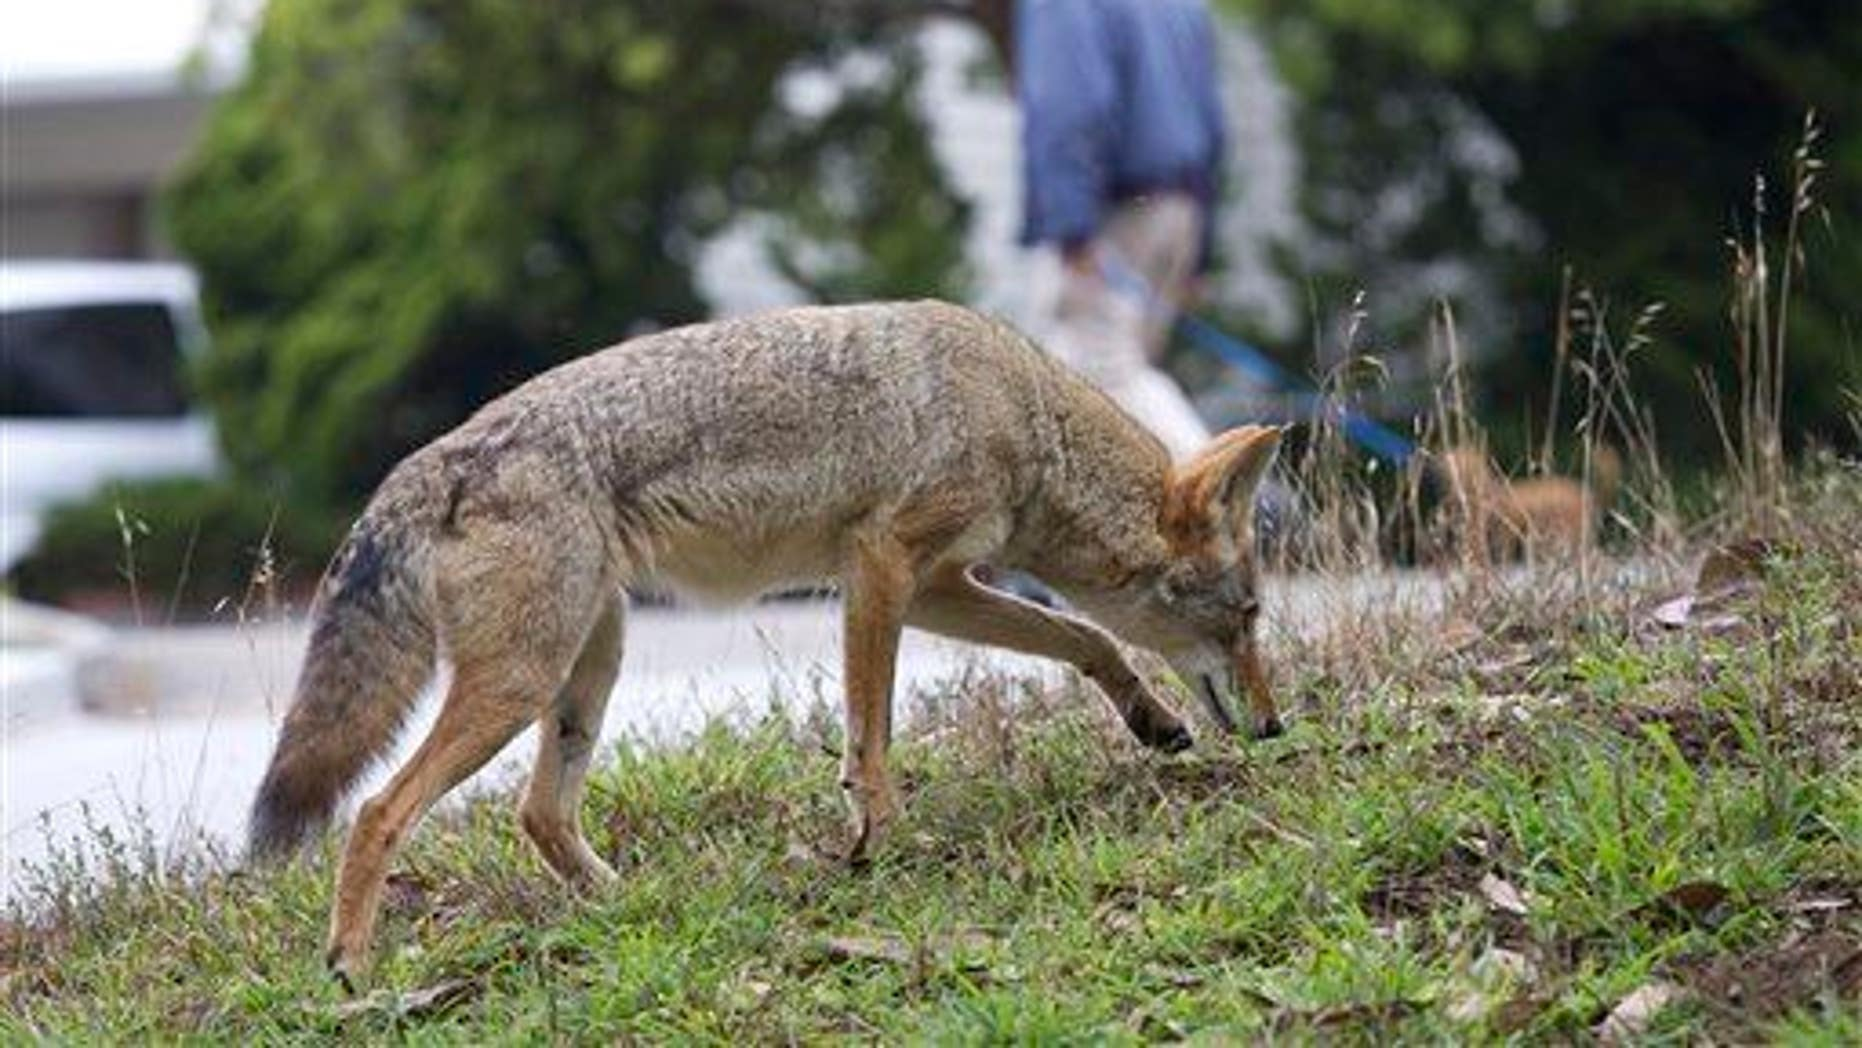 In this Sept. 2009 handout photo provided by Janet Kessler, a coyote is shown on a public street in San Francisco.